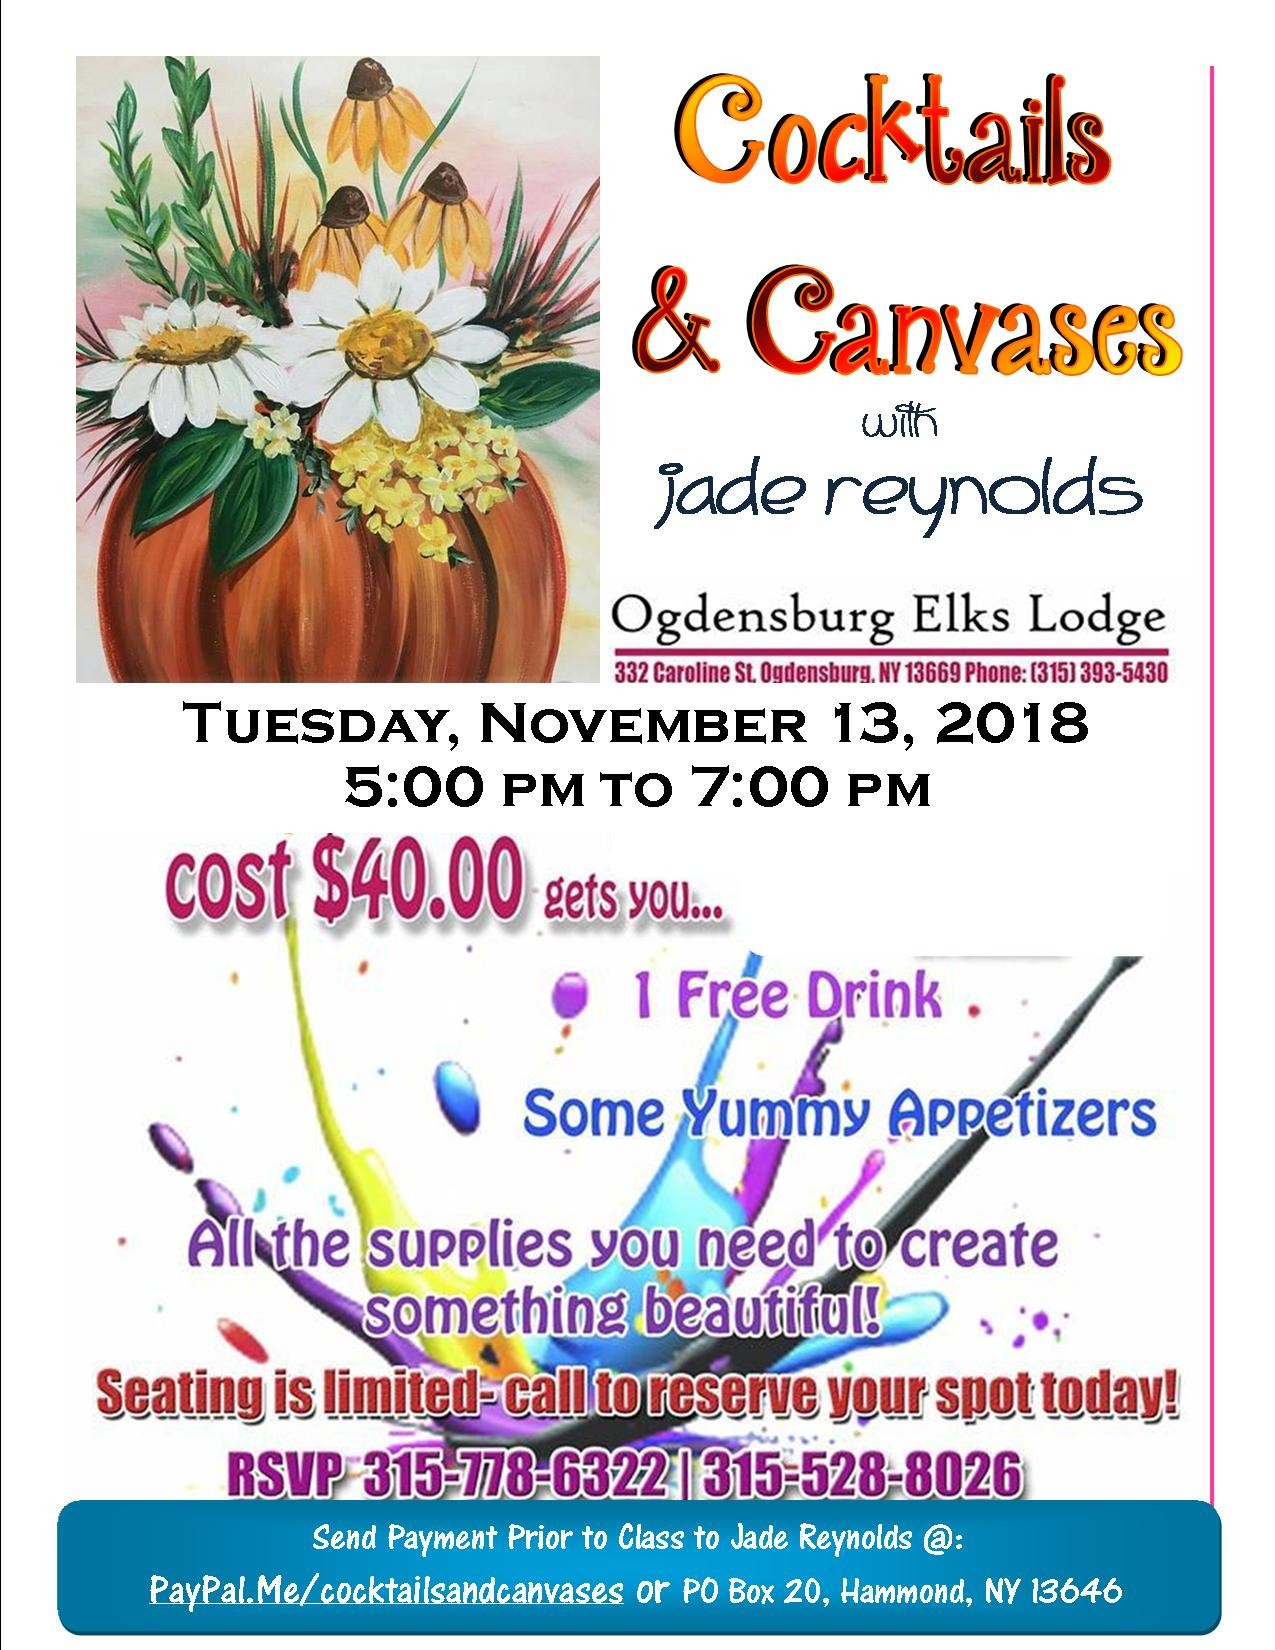 Join Jade Reynolds at the Lodge on November 13th from 5:00 to 7:00pm. $40 gets you a drink, appetizers and all supplies you need to reserve your spot today.   Limited seating. RSVP at 315-788-6322 or 315-528-8026